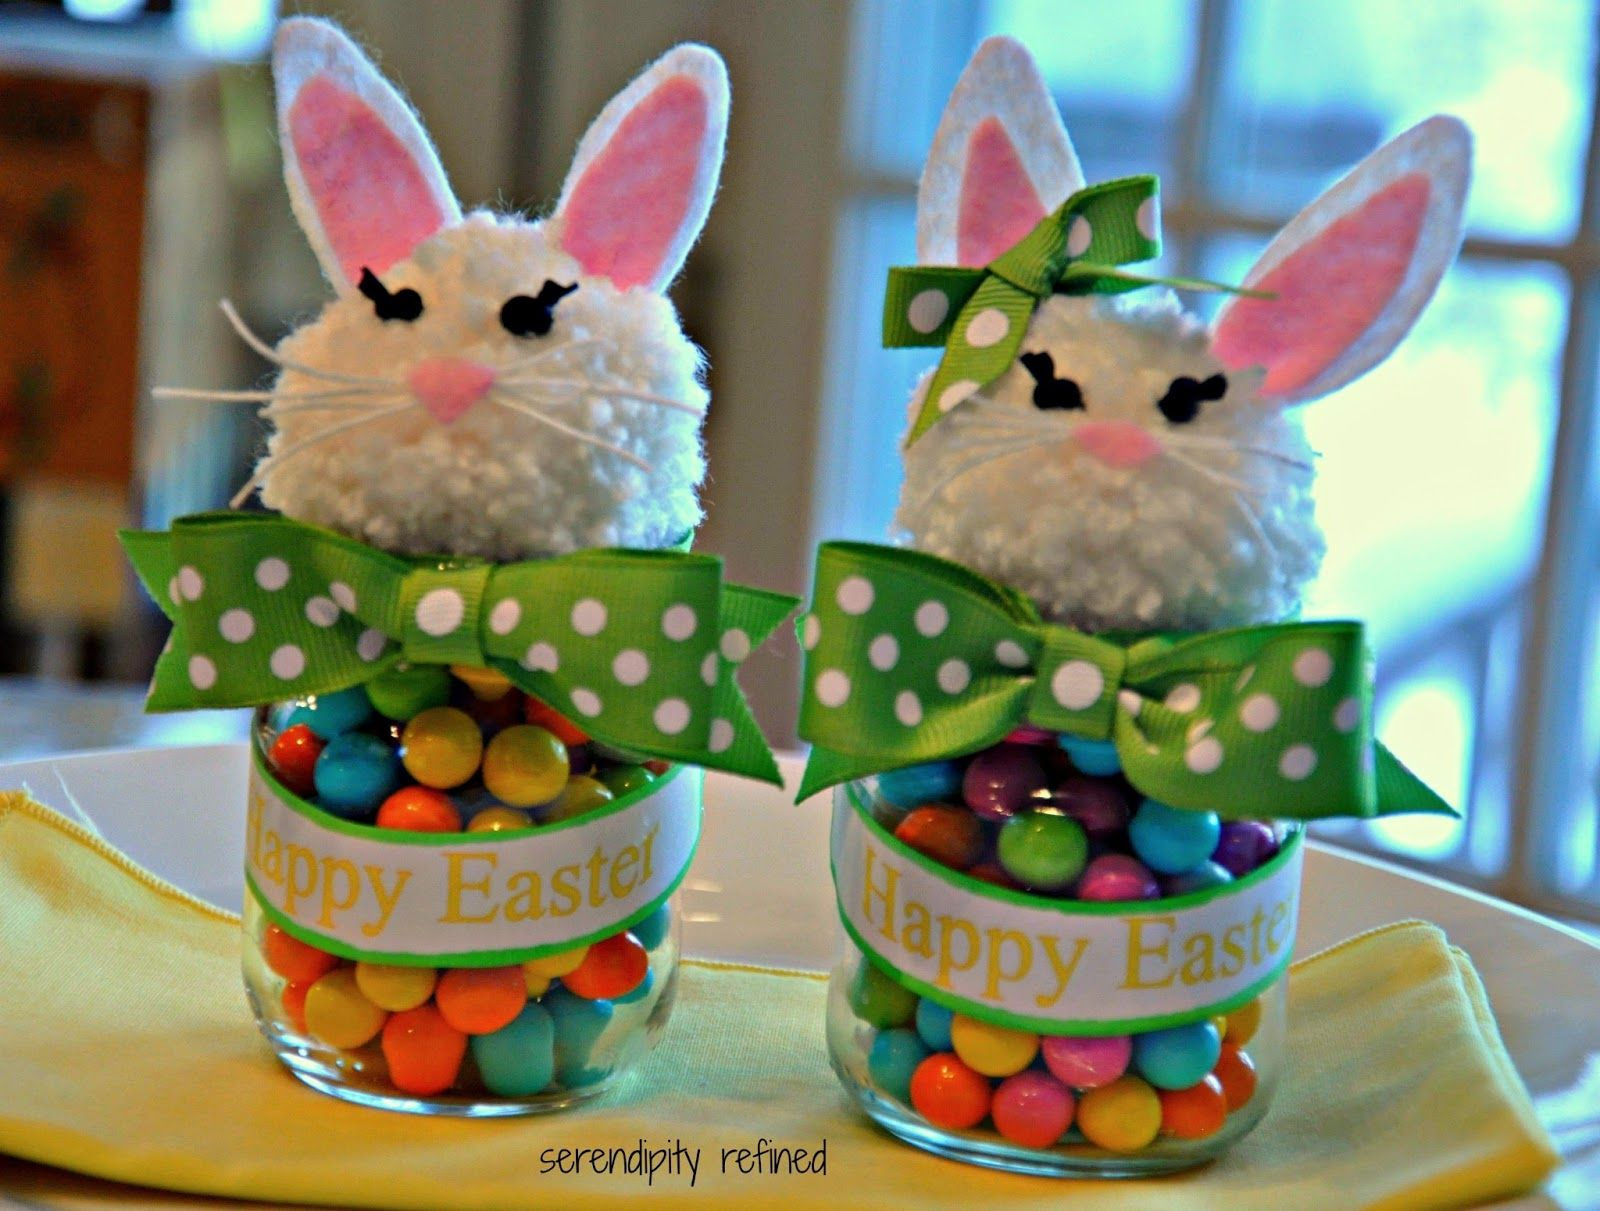 Diy easter gifts for kids diyeastercraftupcycledbabyfoodjar diy easter gifts for kids diyeastercraftupcycledbabyfoodjarbunny rabbitcandyholder negle Choice Image